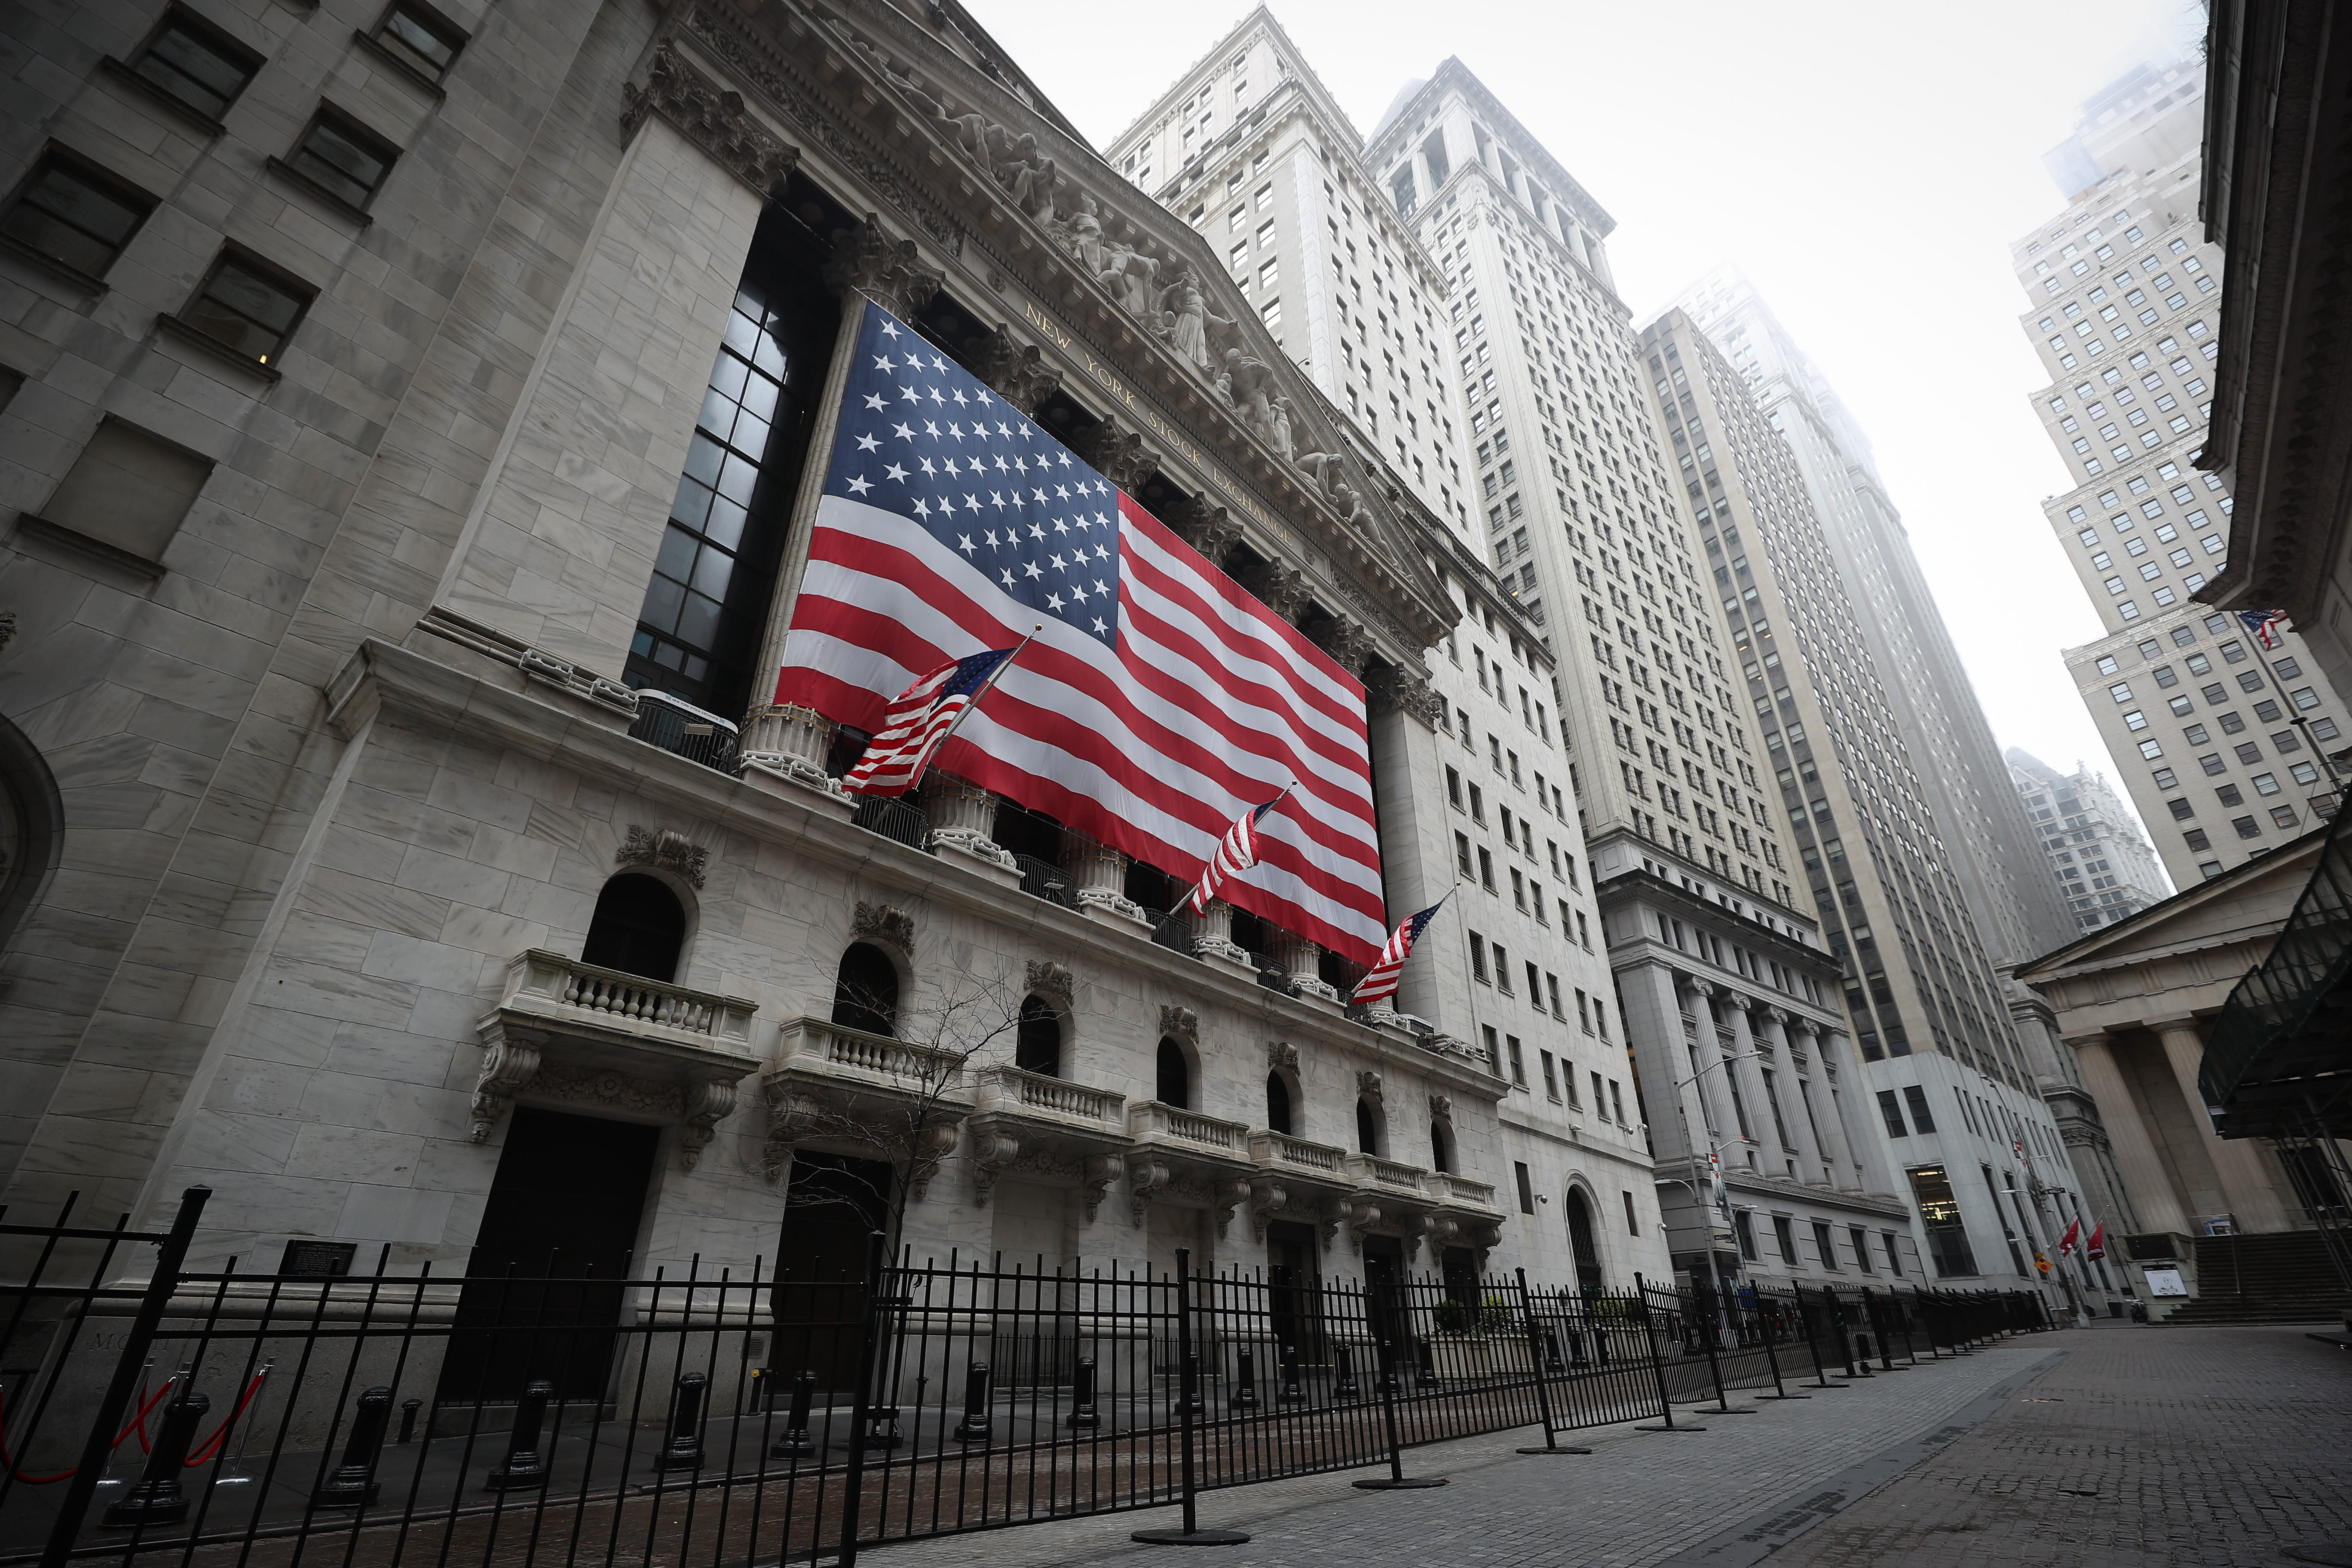 Stock market live updates: Dow futures up 150, waiting for ADP jobs, Disney suspends dividend